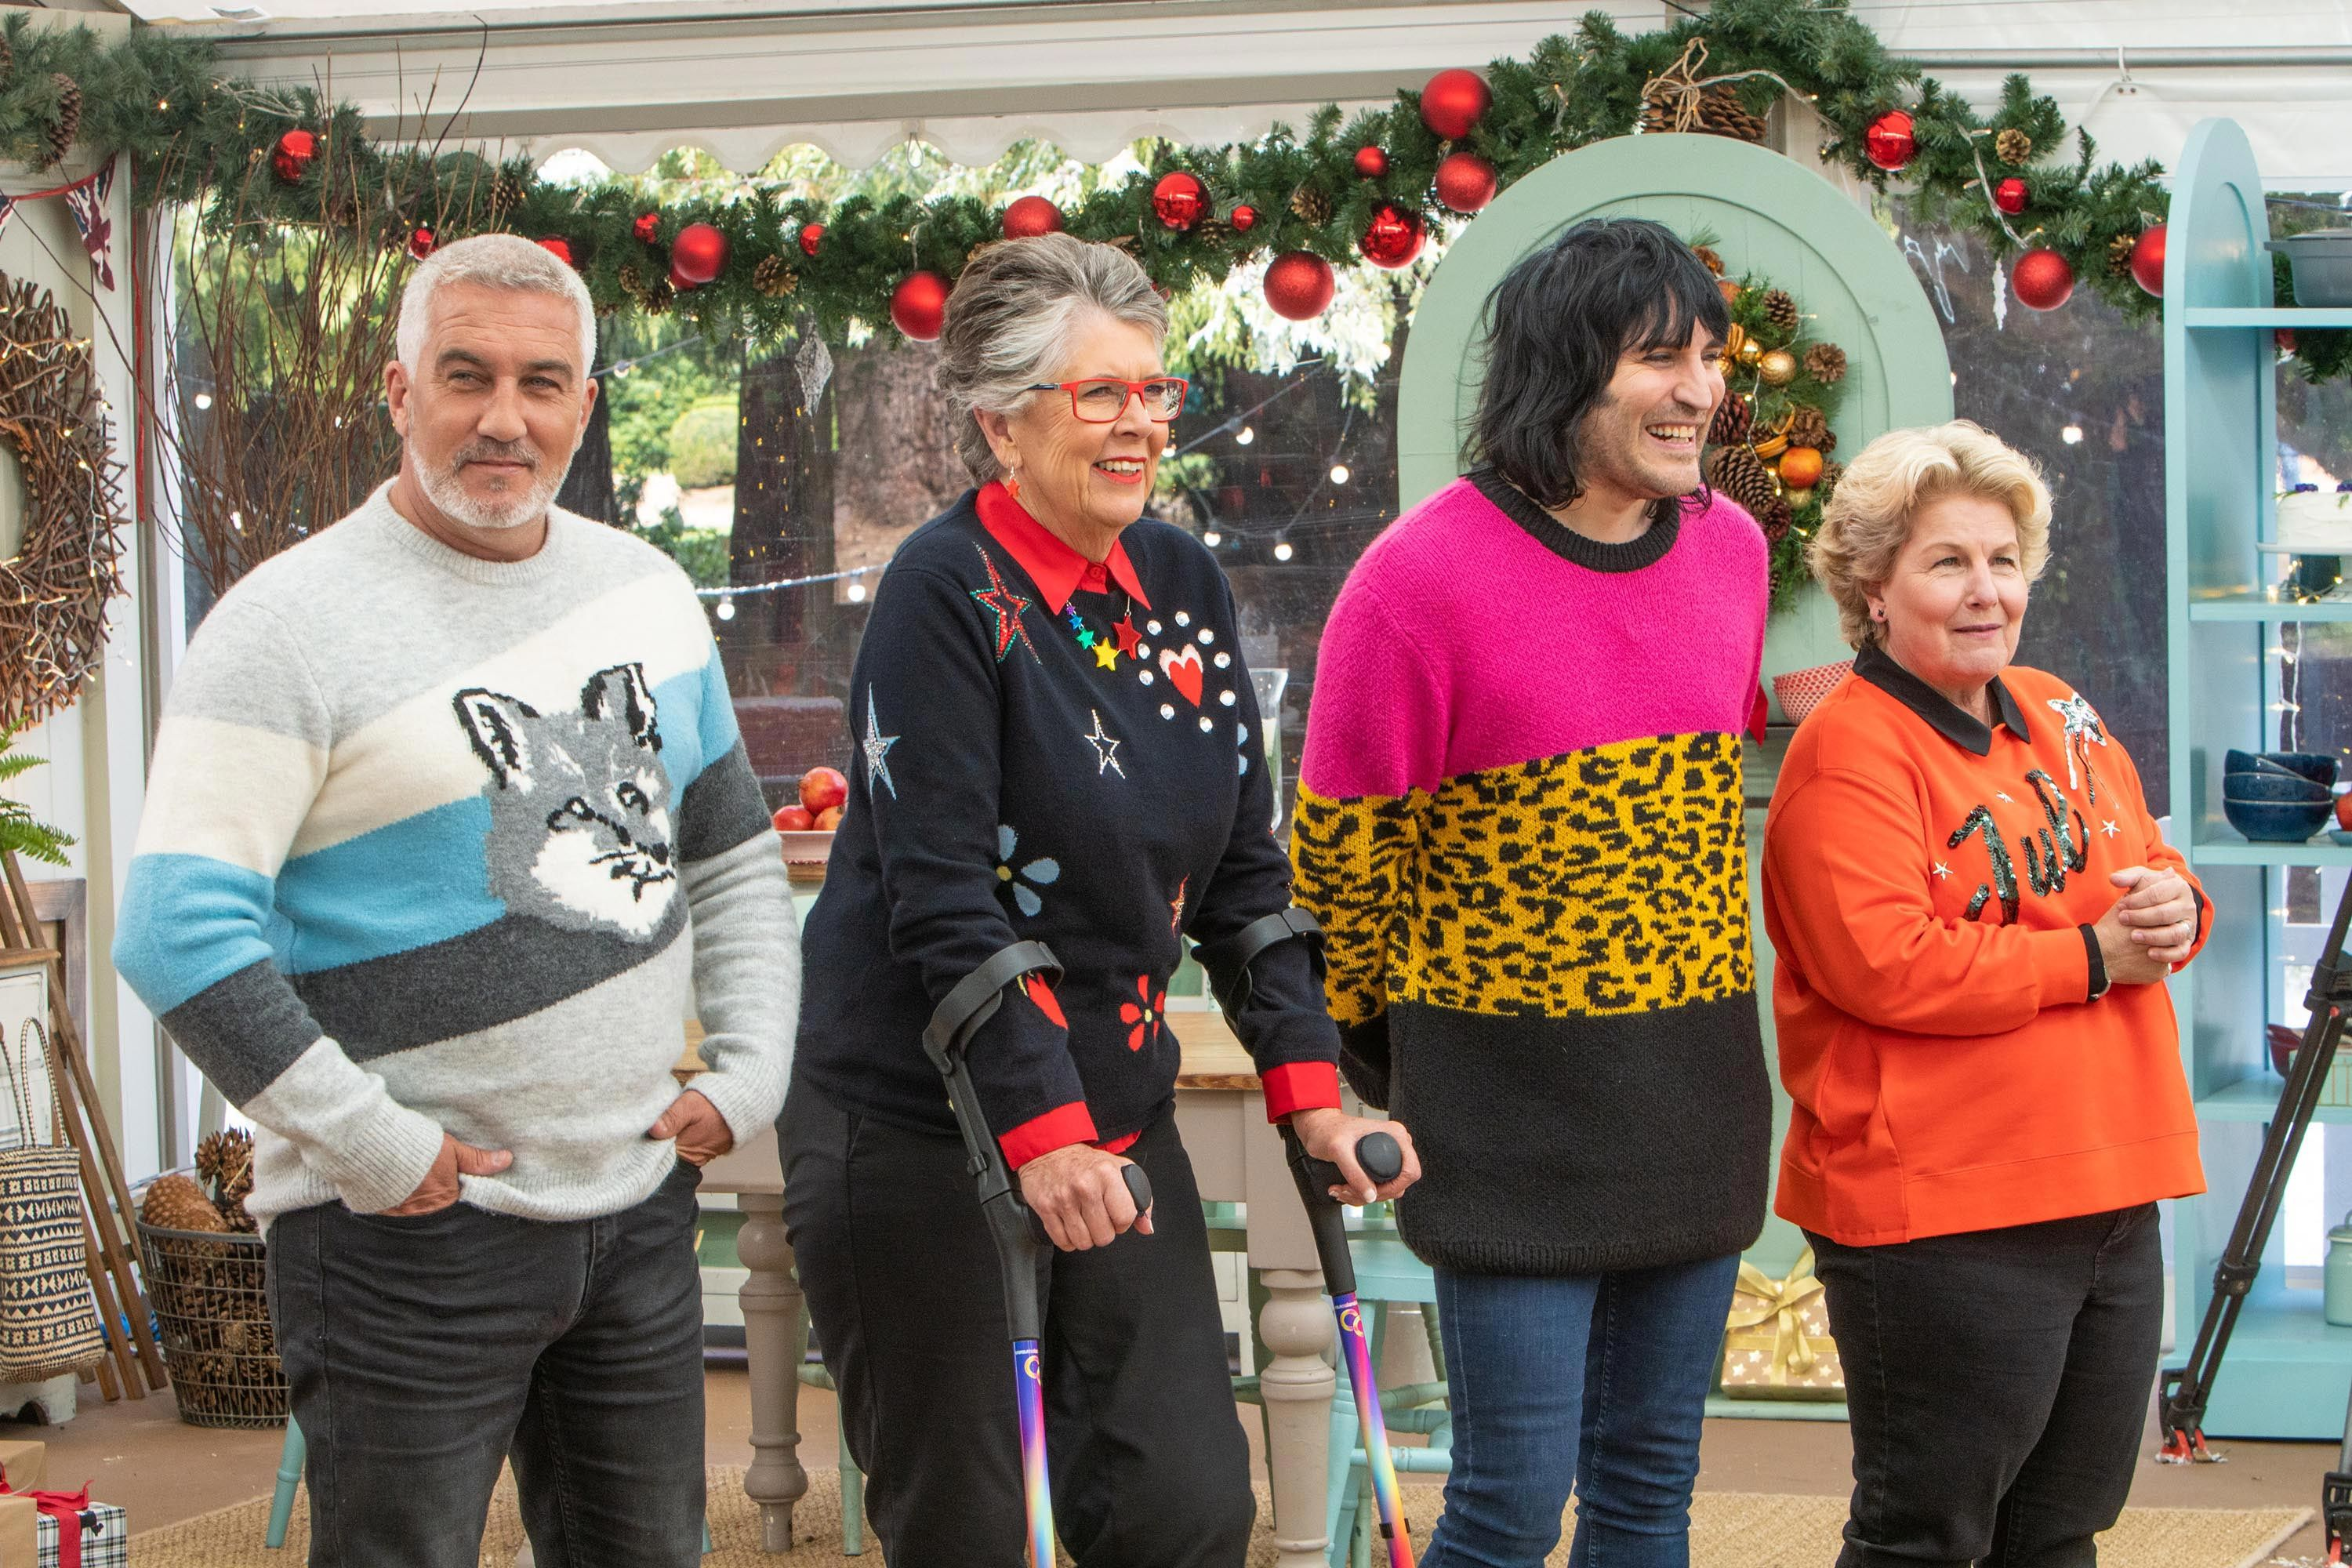 Great British Bake Off's Noel Fielding, Paul Hollywood and Prue Leith are all returning